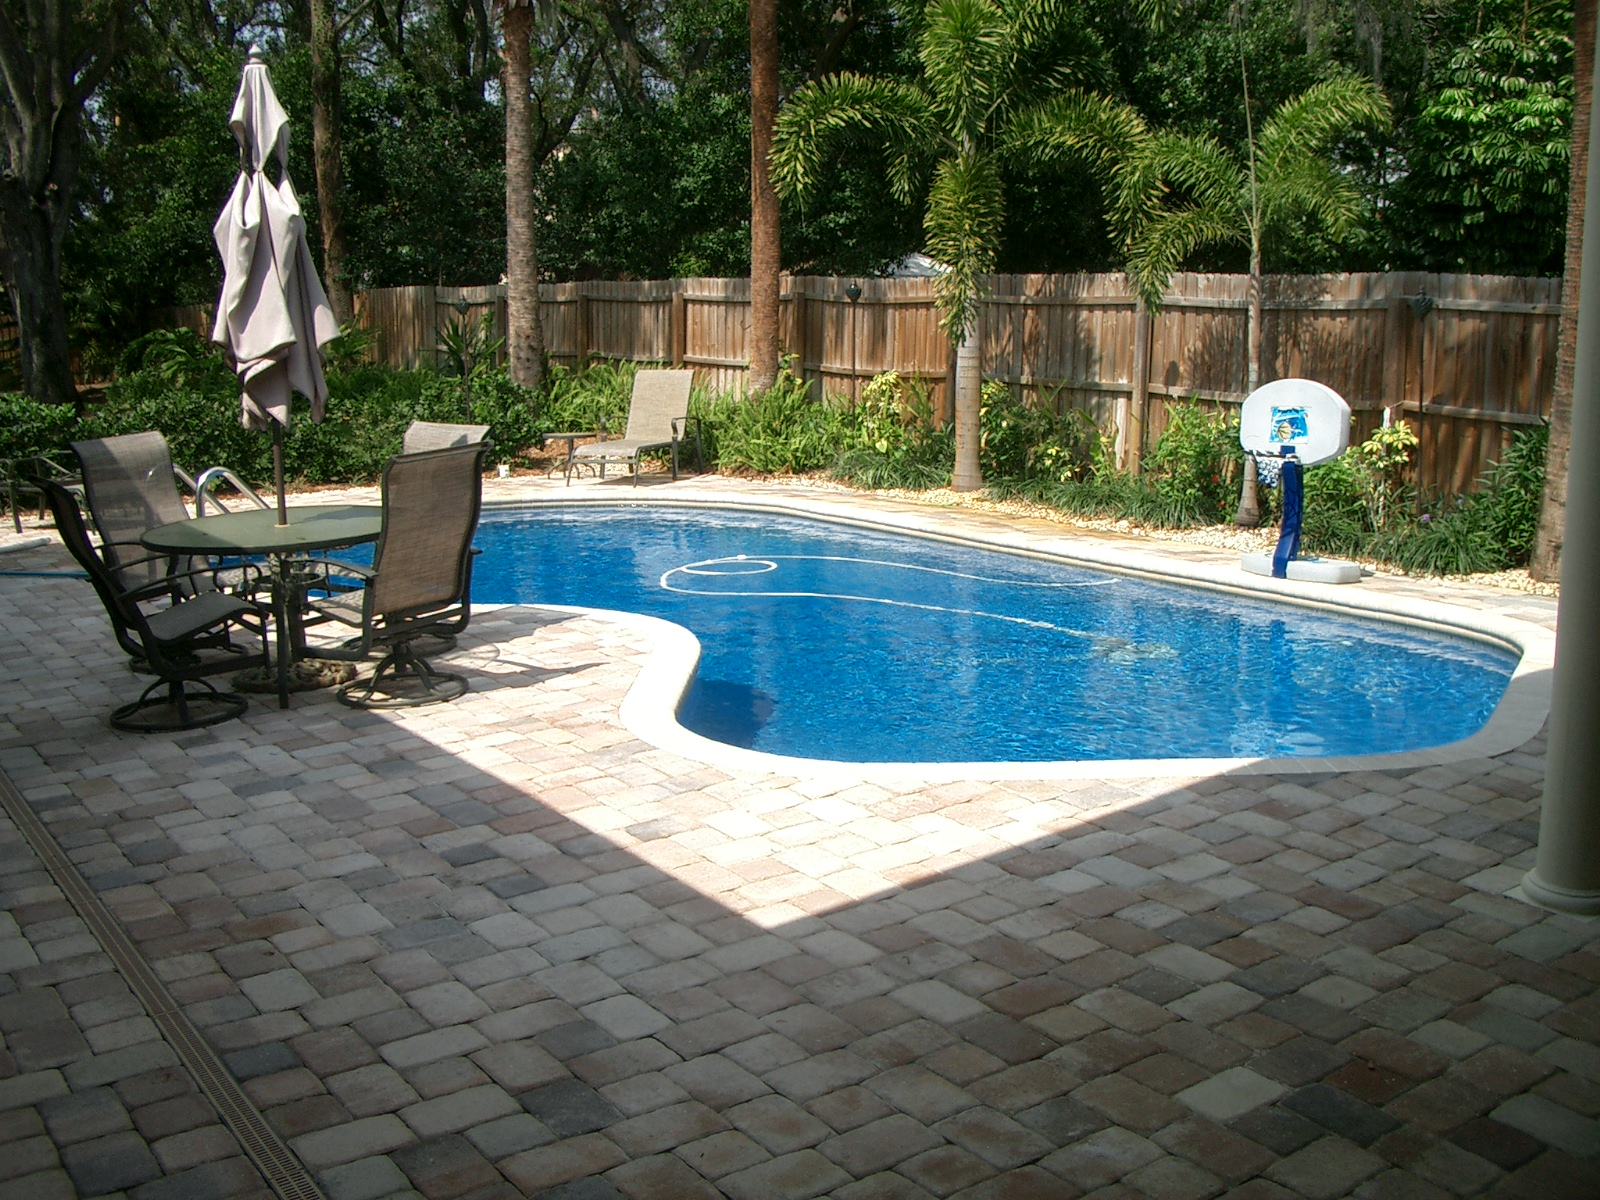 backyard with pool design ideas photo - 2